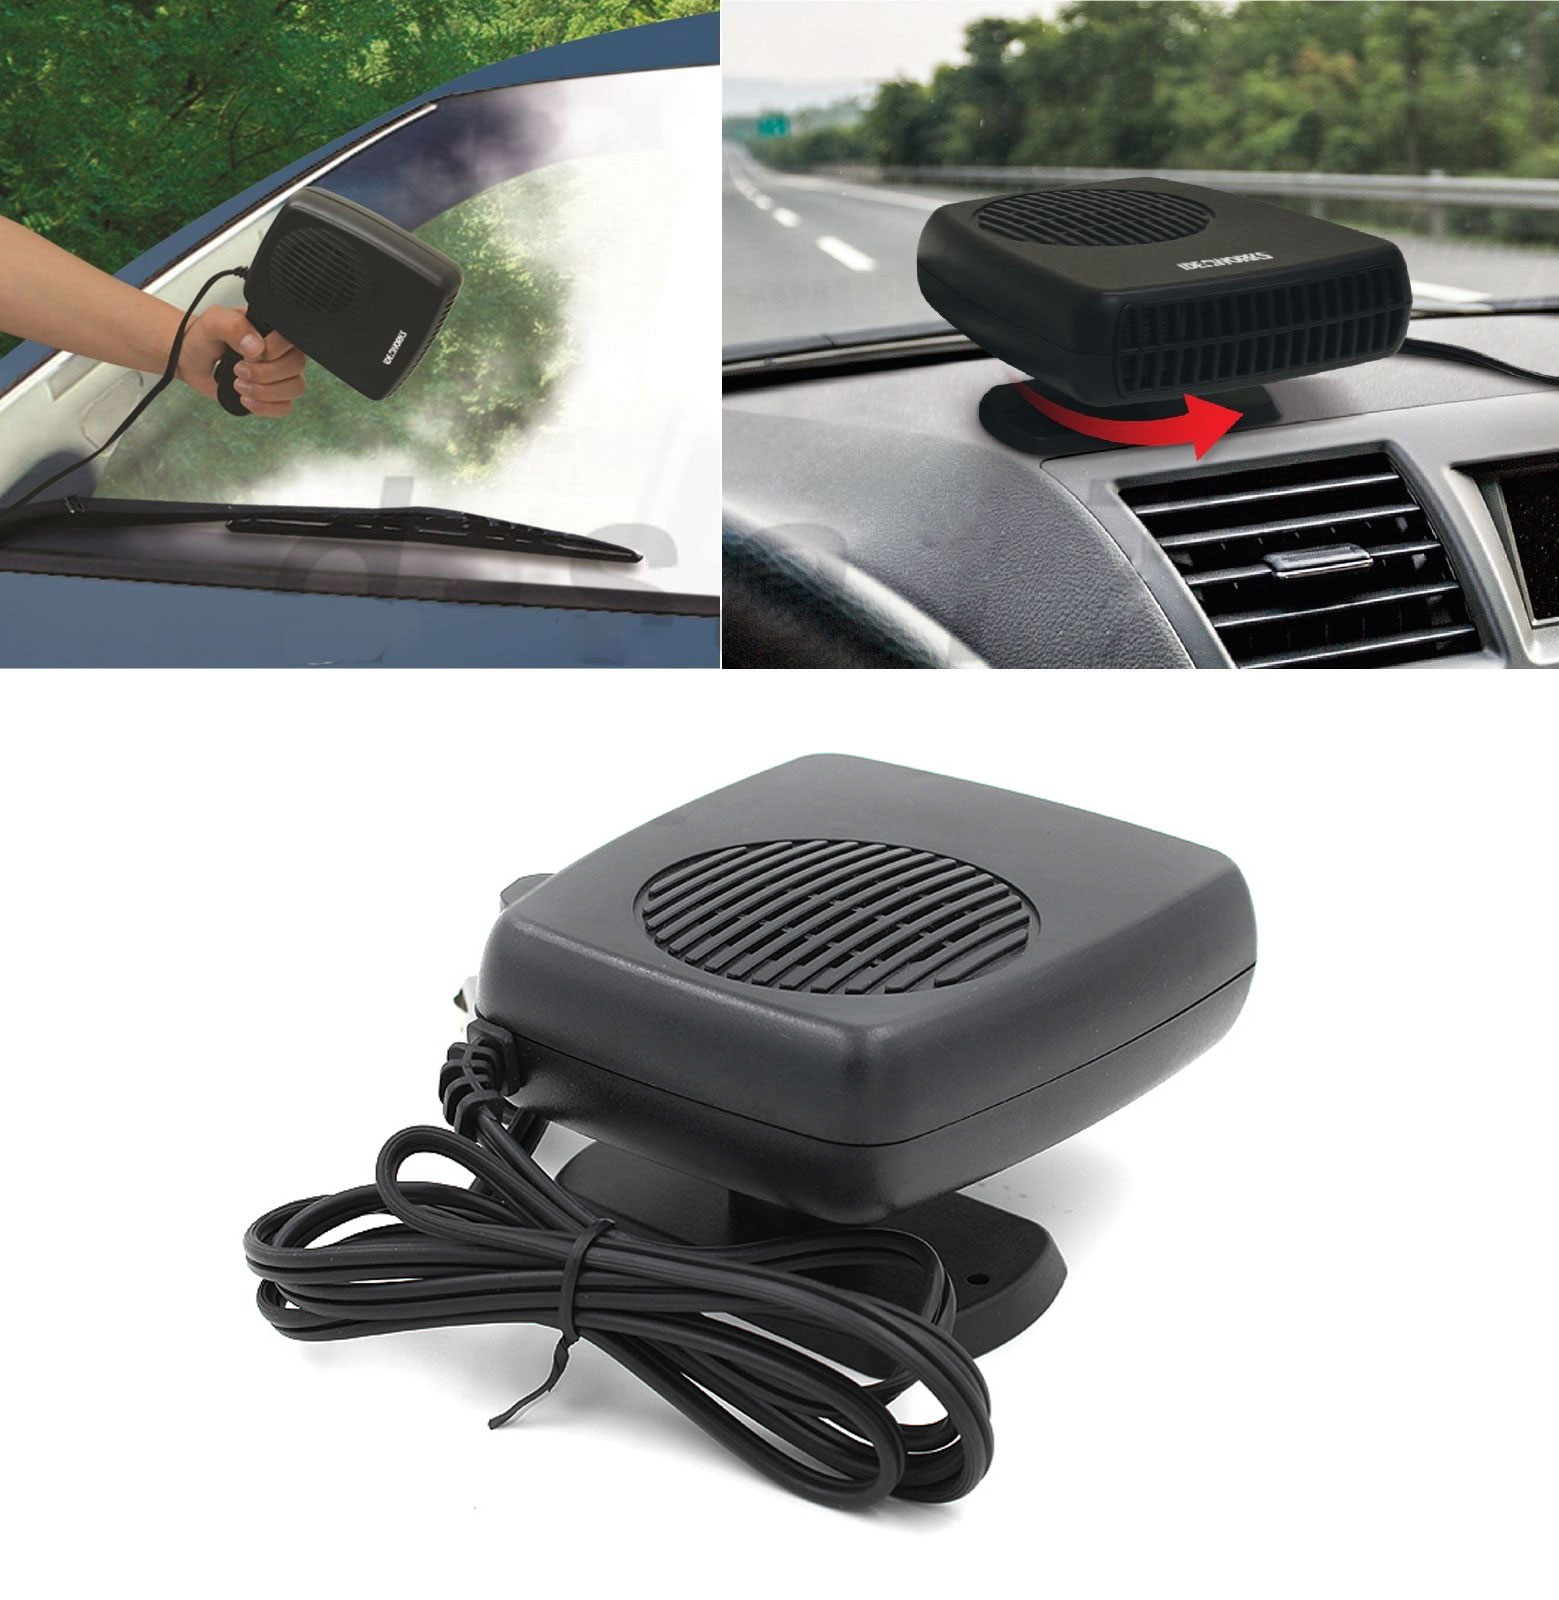 Details About 2 In 1 Portable Car Auto Fan Heater Cooler Plugin Demister Defroster 12v 200w Fd